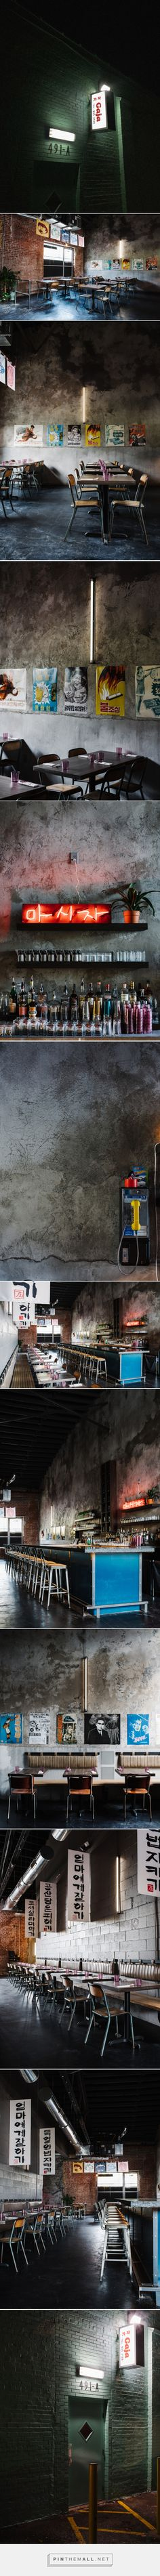 Gaja Restaurant Branding & Interior Design - Grits + Grids - created via https://pinthemall.net